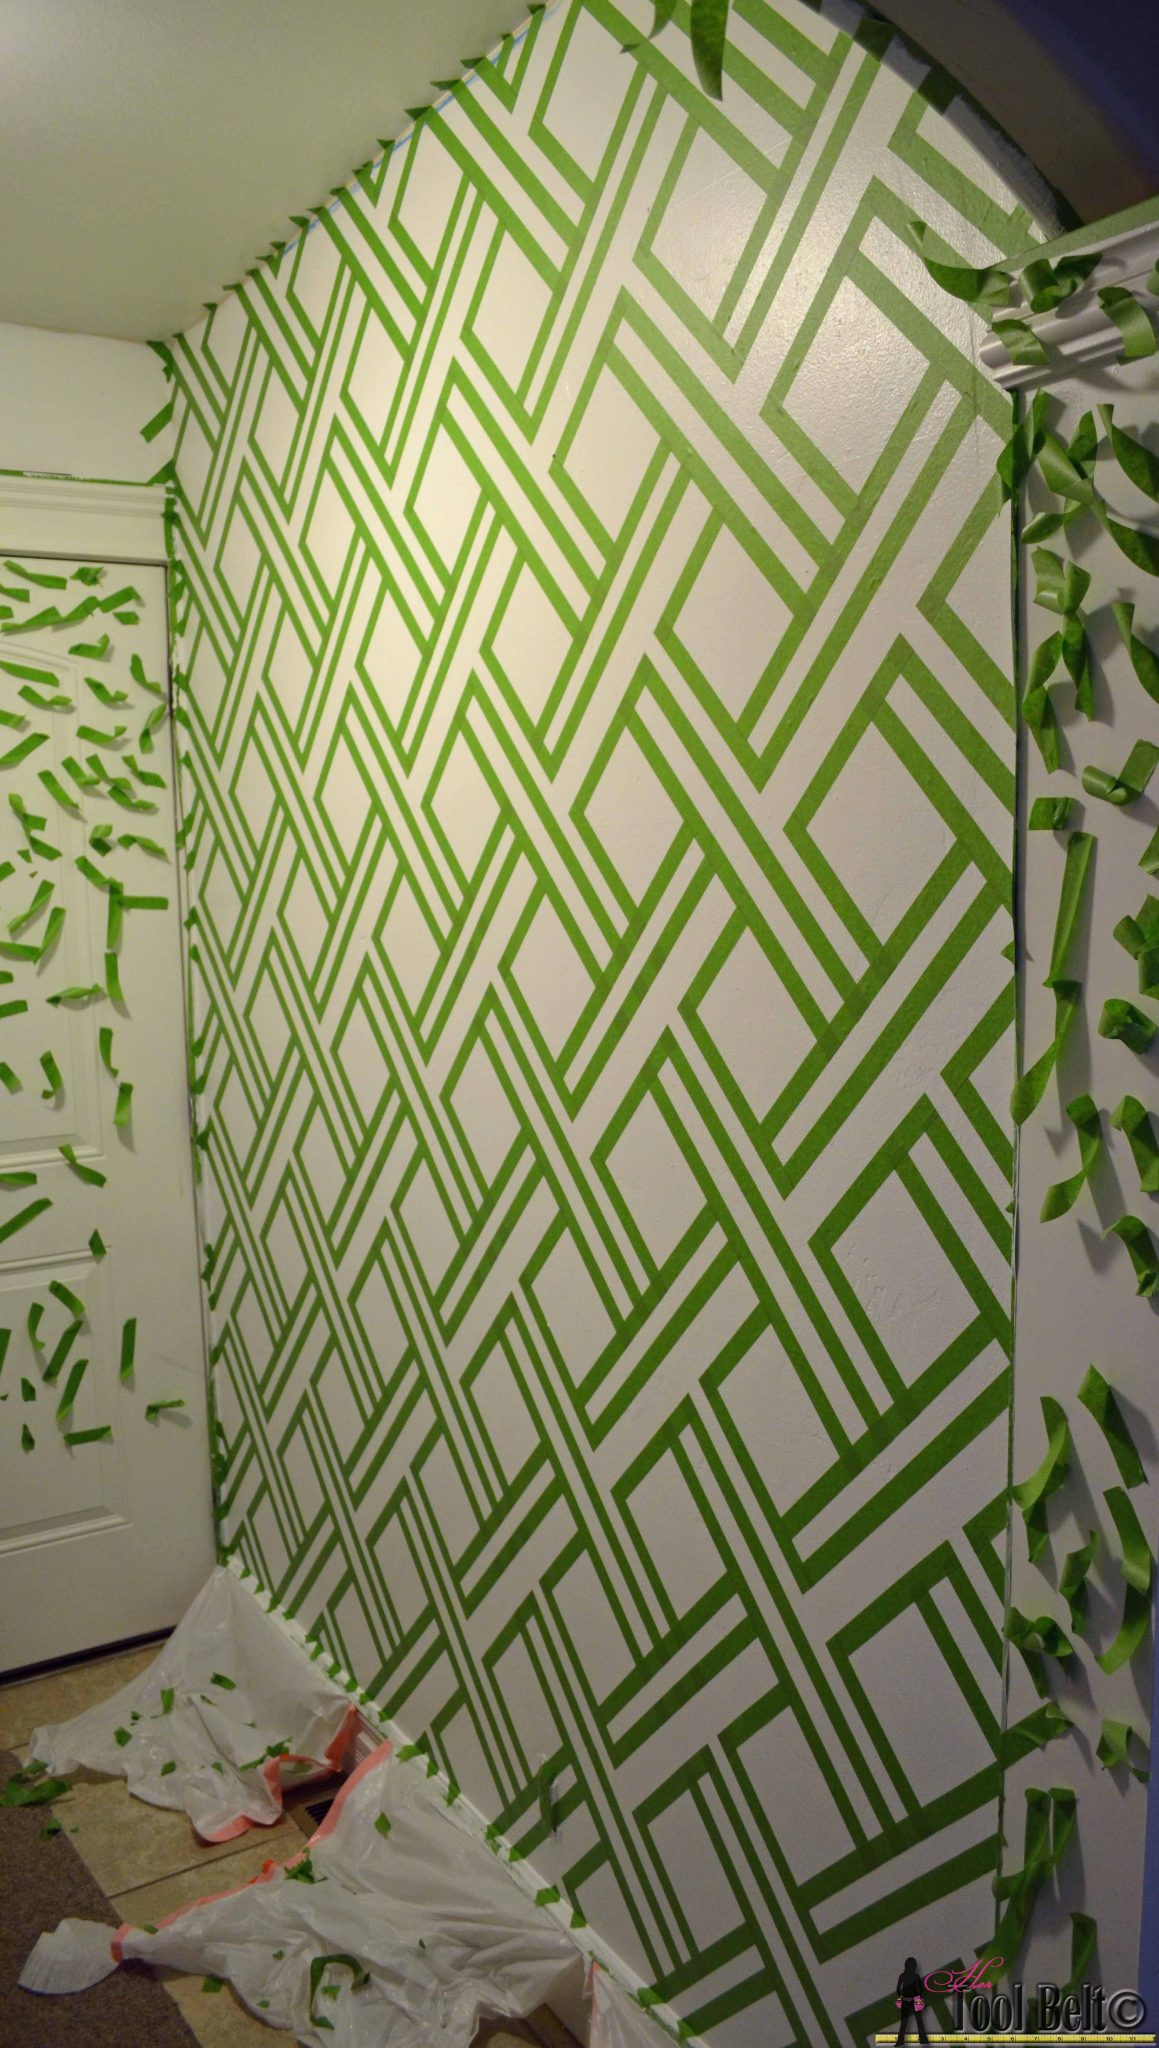 Geometric Wall Taping It Modern Her Tool Belt